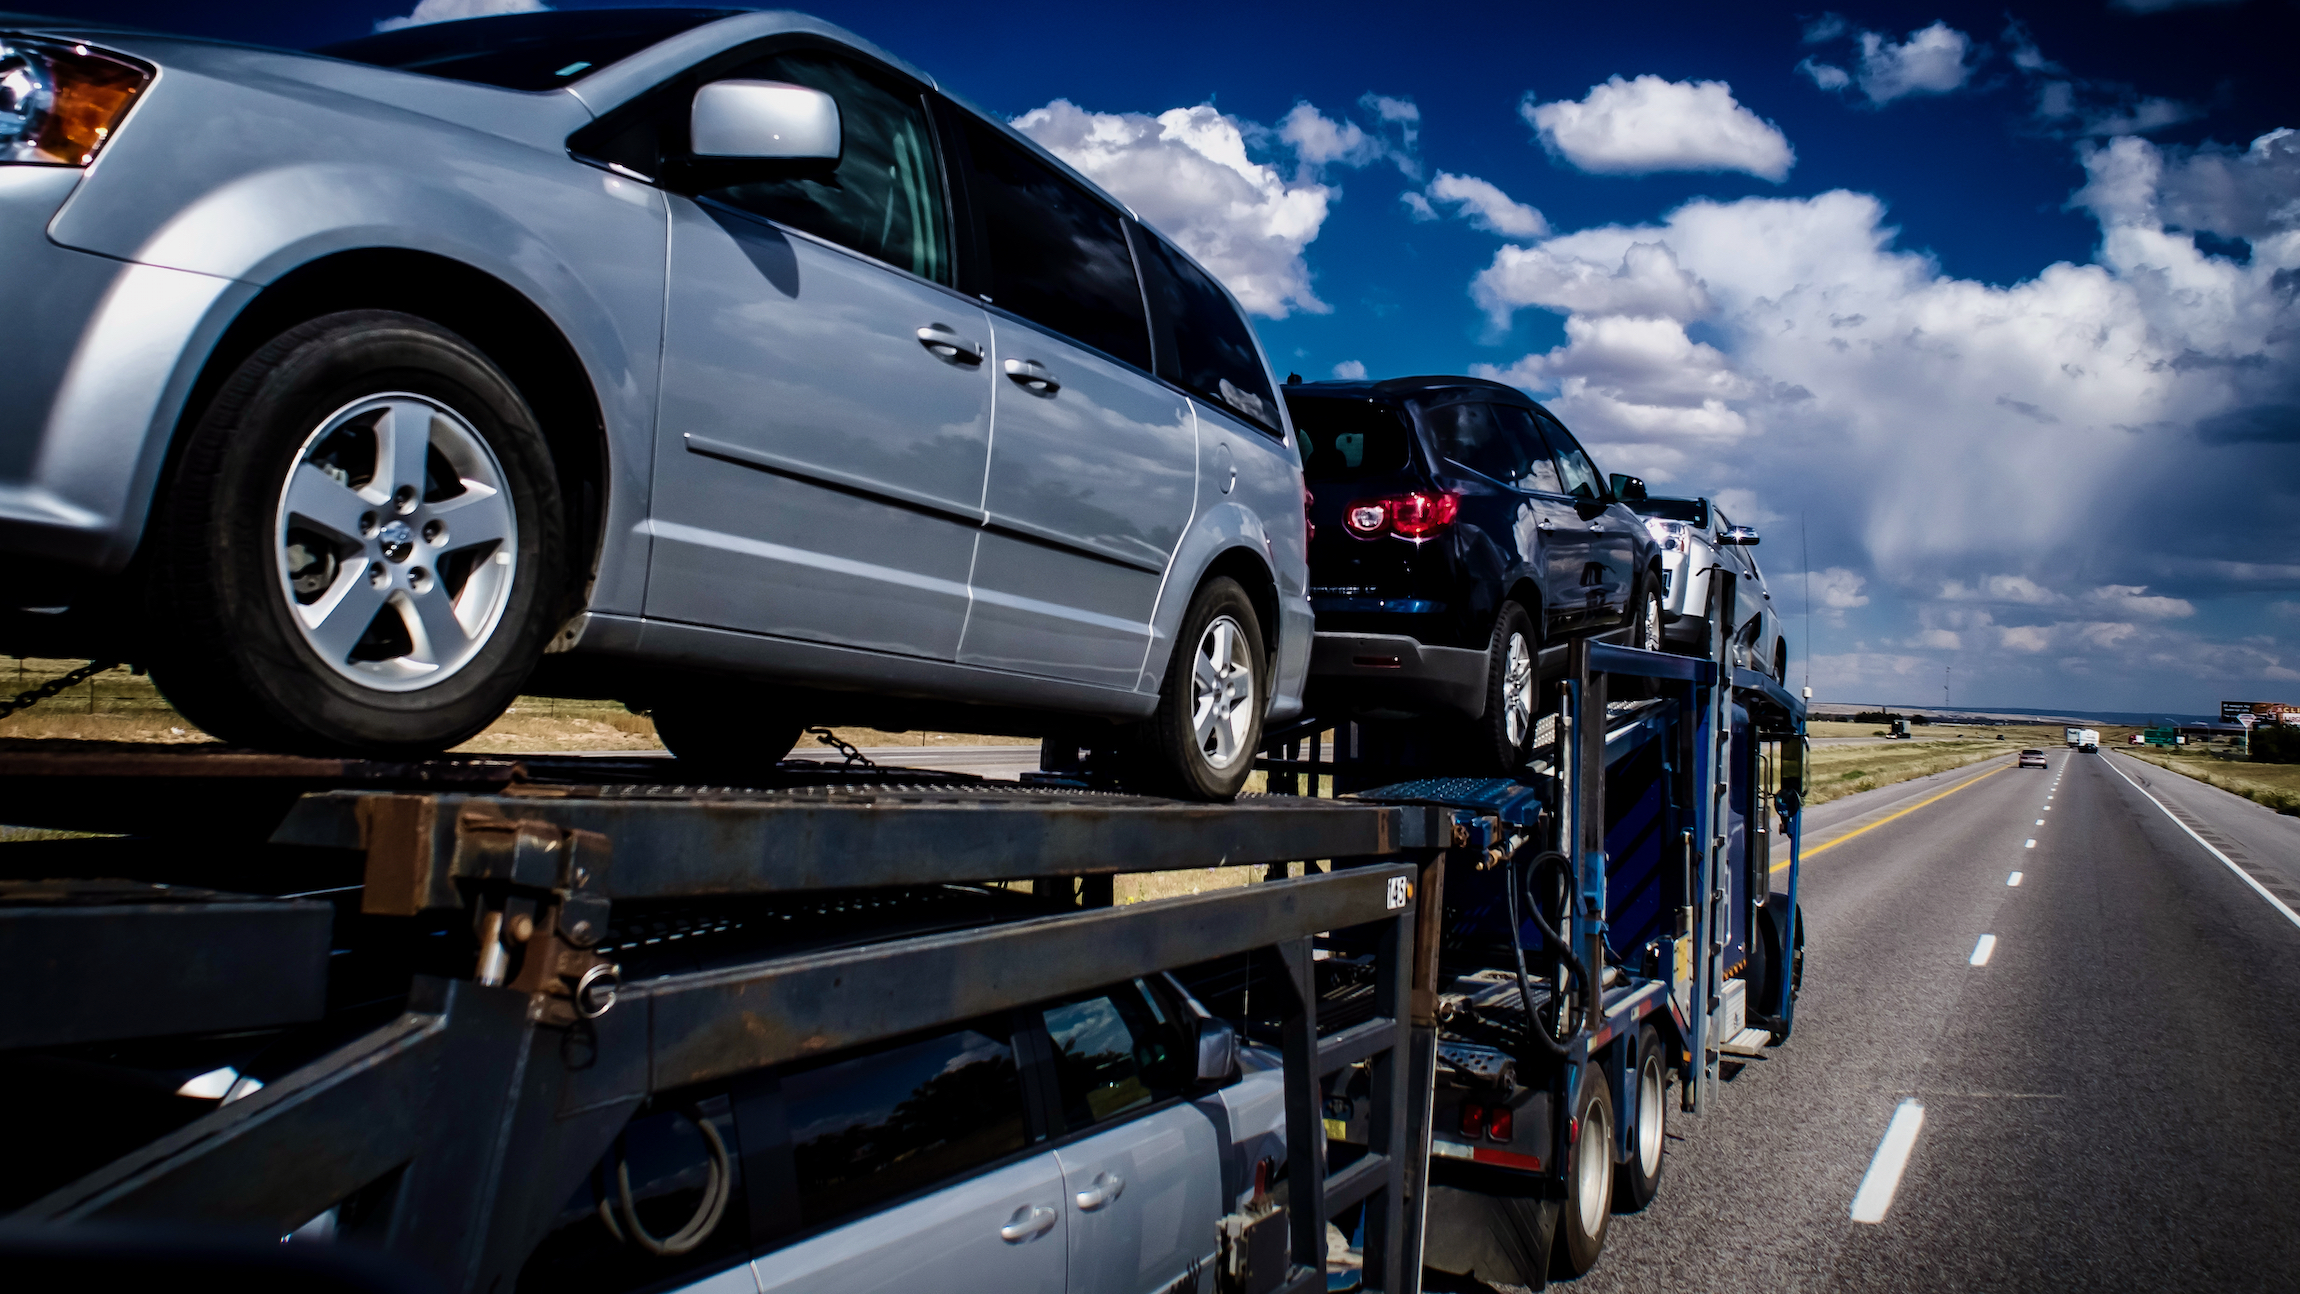 A truck transporting cars to viewed from the front right to illustrate an article about an acquisition by the company Trade X.